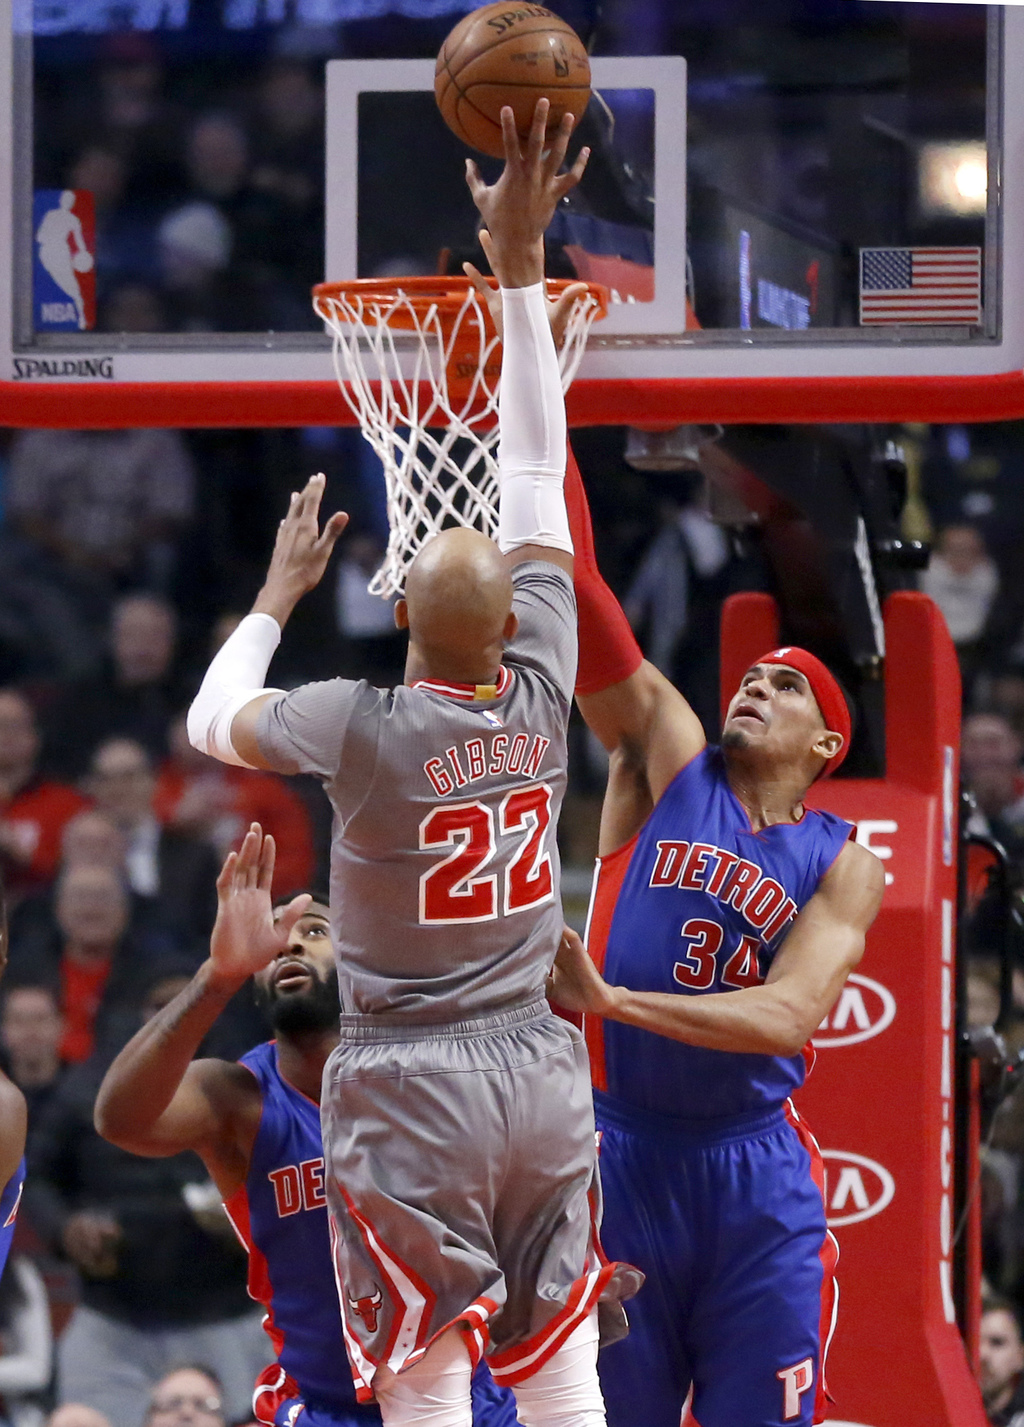 Detroit Pistons' Tobias Harris, right, defends on a shot by Chicago Bulls' Taj Gibson (22) during the first half of an NBA basketball g...